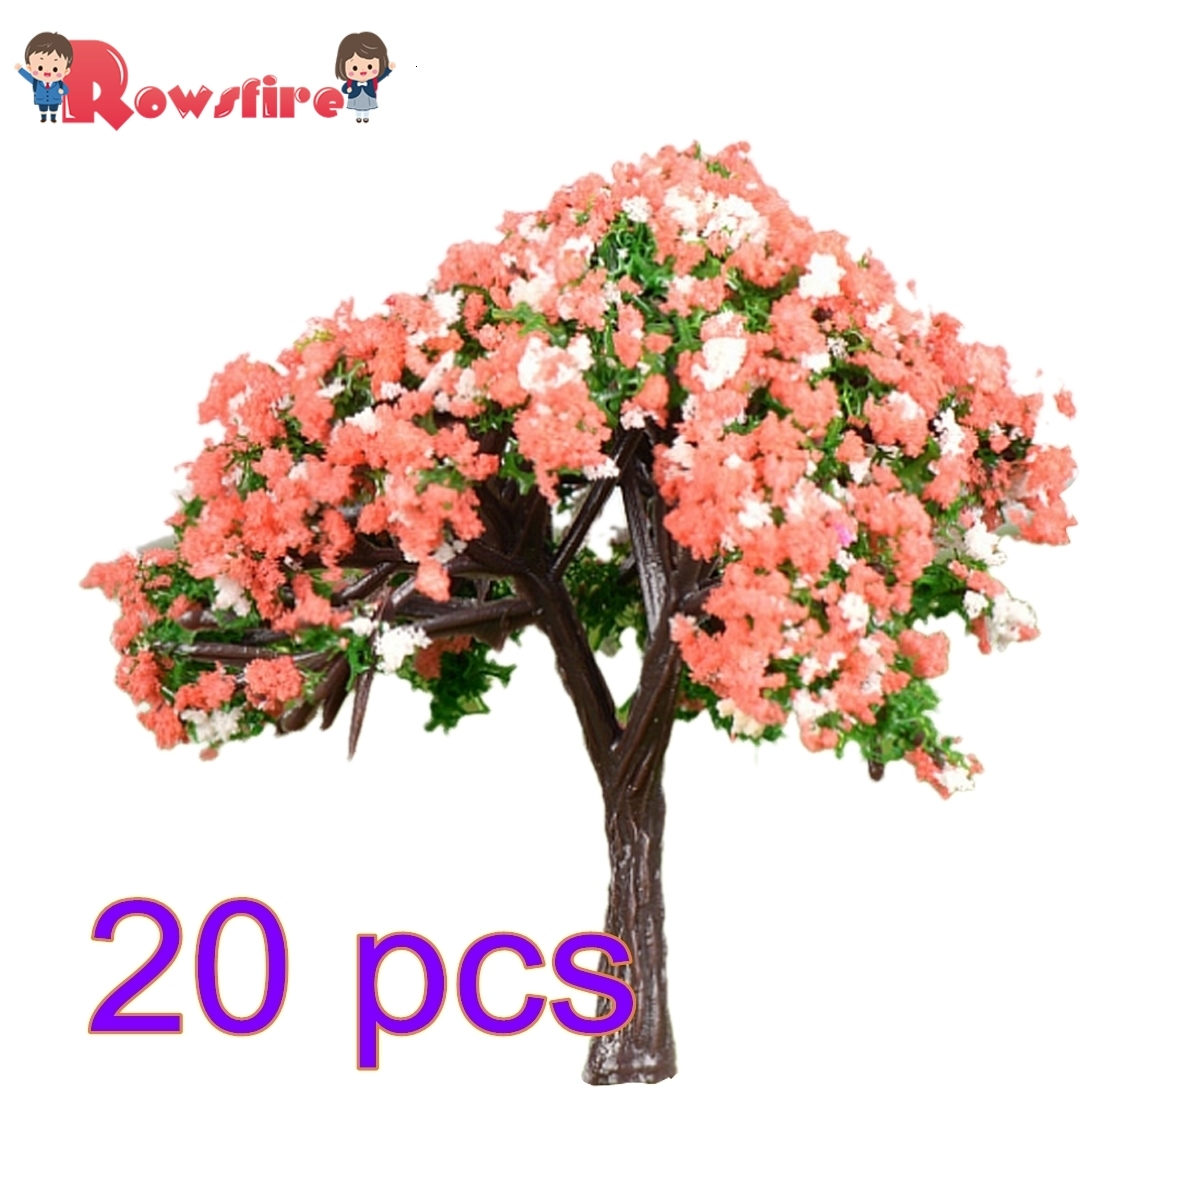 Rowsfire 20pcs 5.8cm Ho 1:85 Scale Hibiscus Tree Model Railroad Architecture Diorama Tree For Diy Scenery Landscape